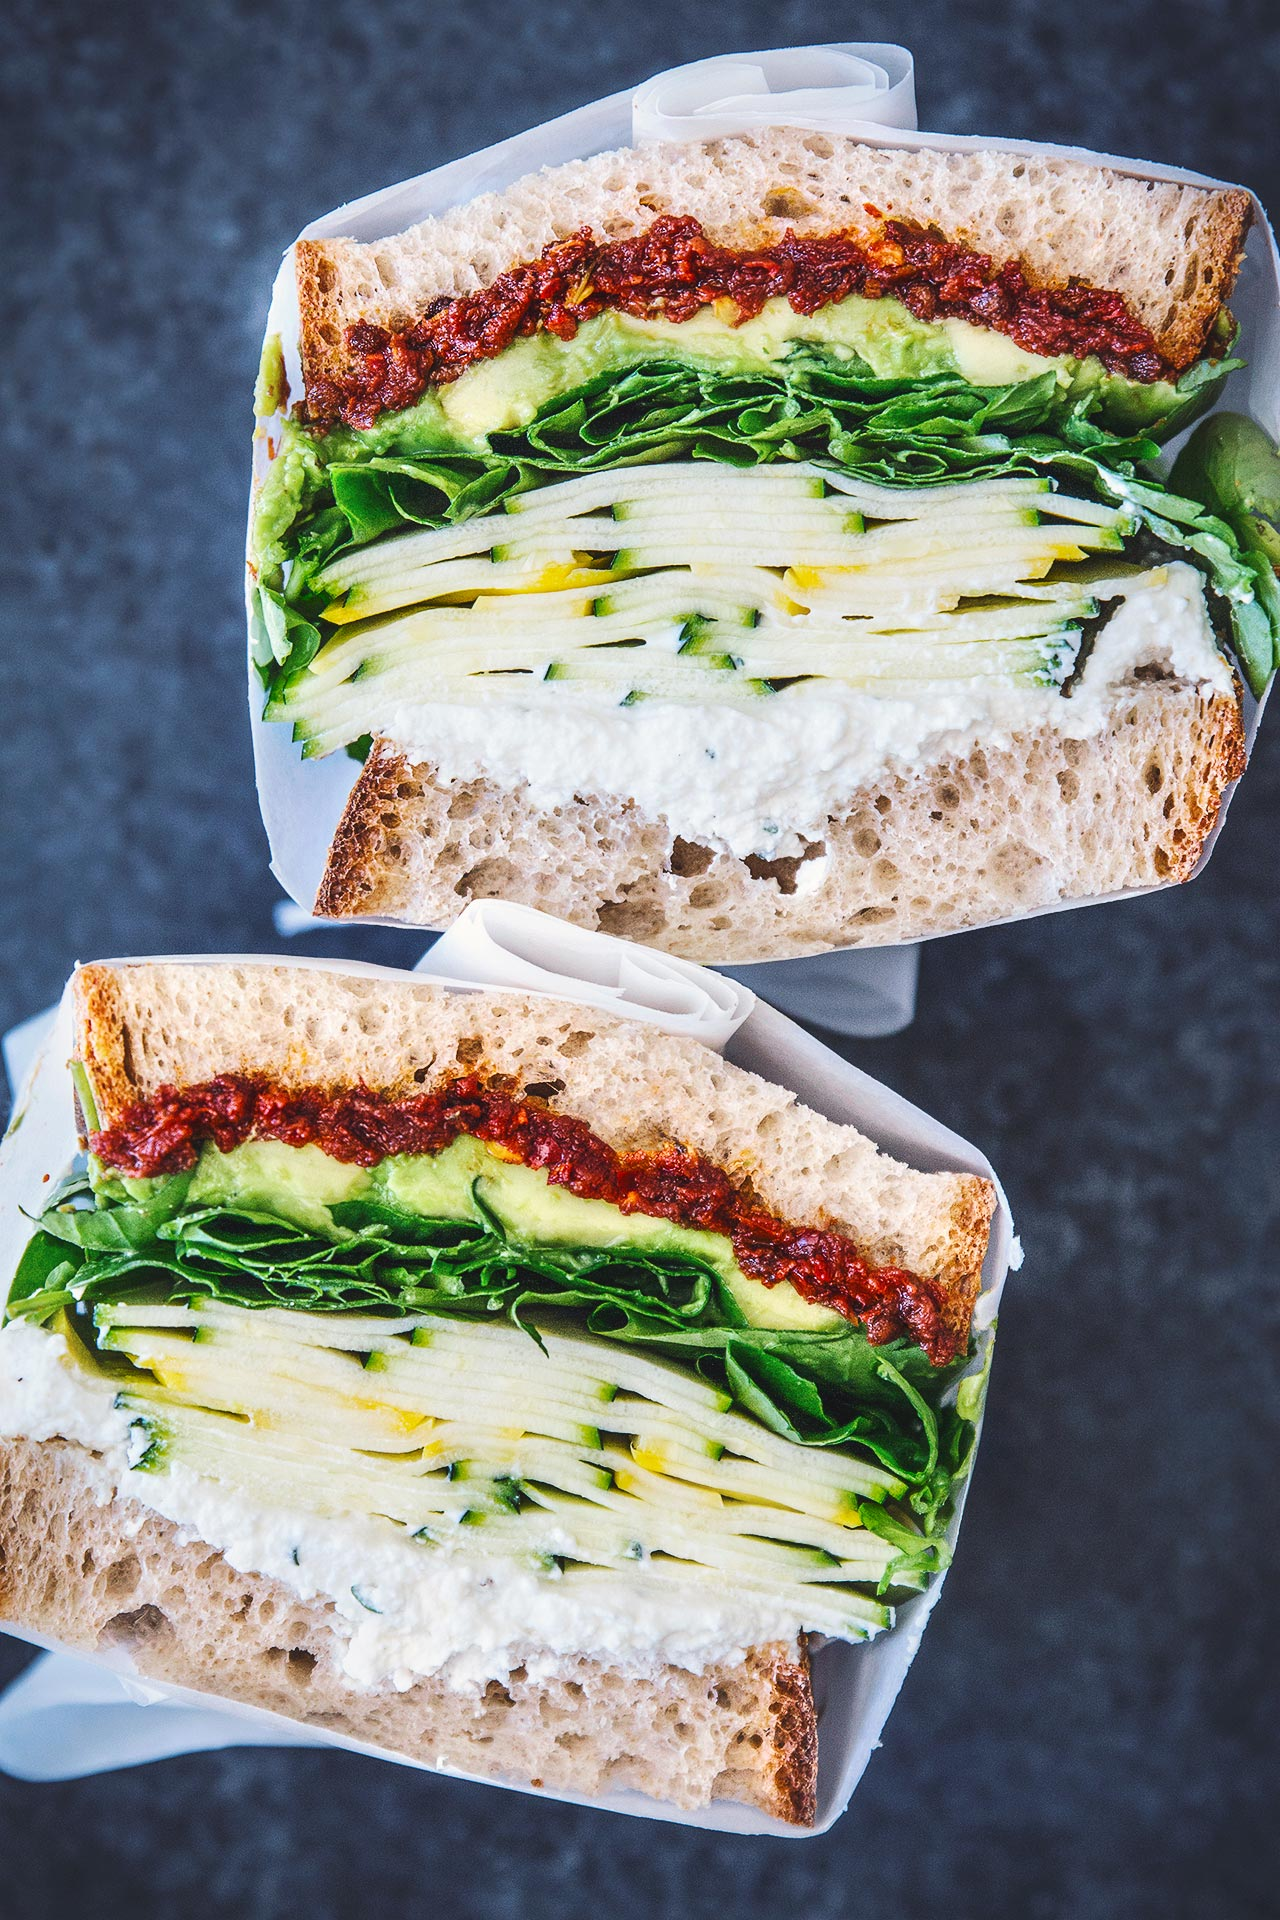 SUMMER SQUASH SANDWICH WITH SPICY SUN DRIED TOMATO & HERBED RICOTTA